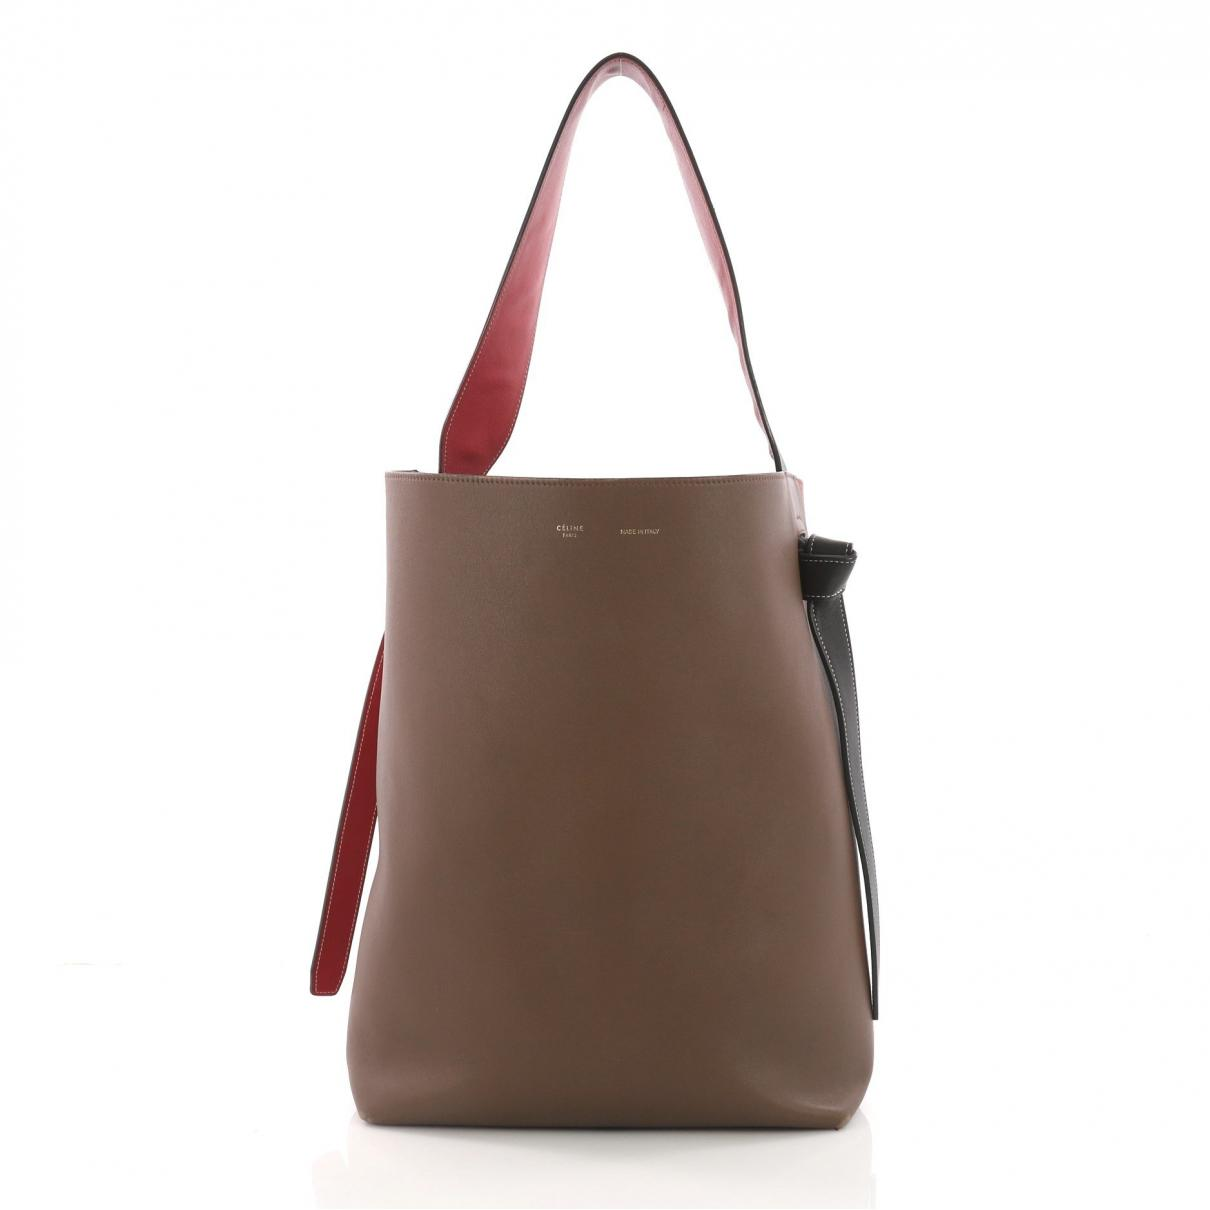 Céline Twisted Leather Tote in Brown - Lyst a86123823b5ad